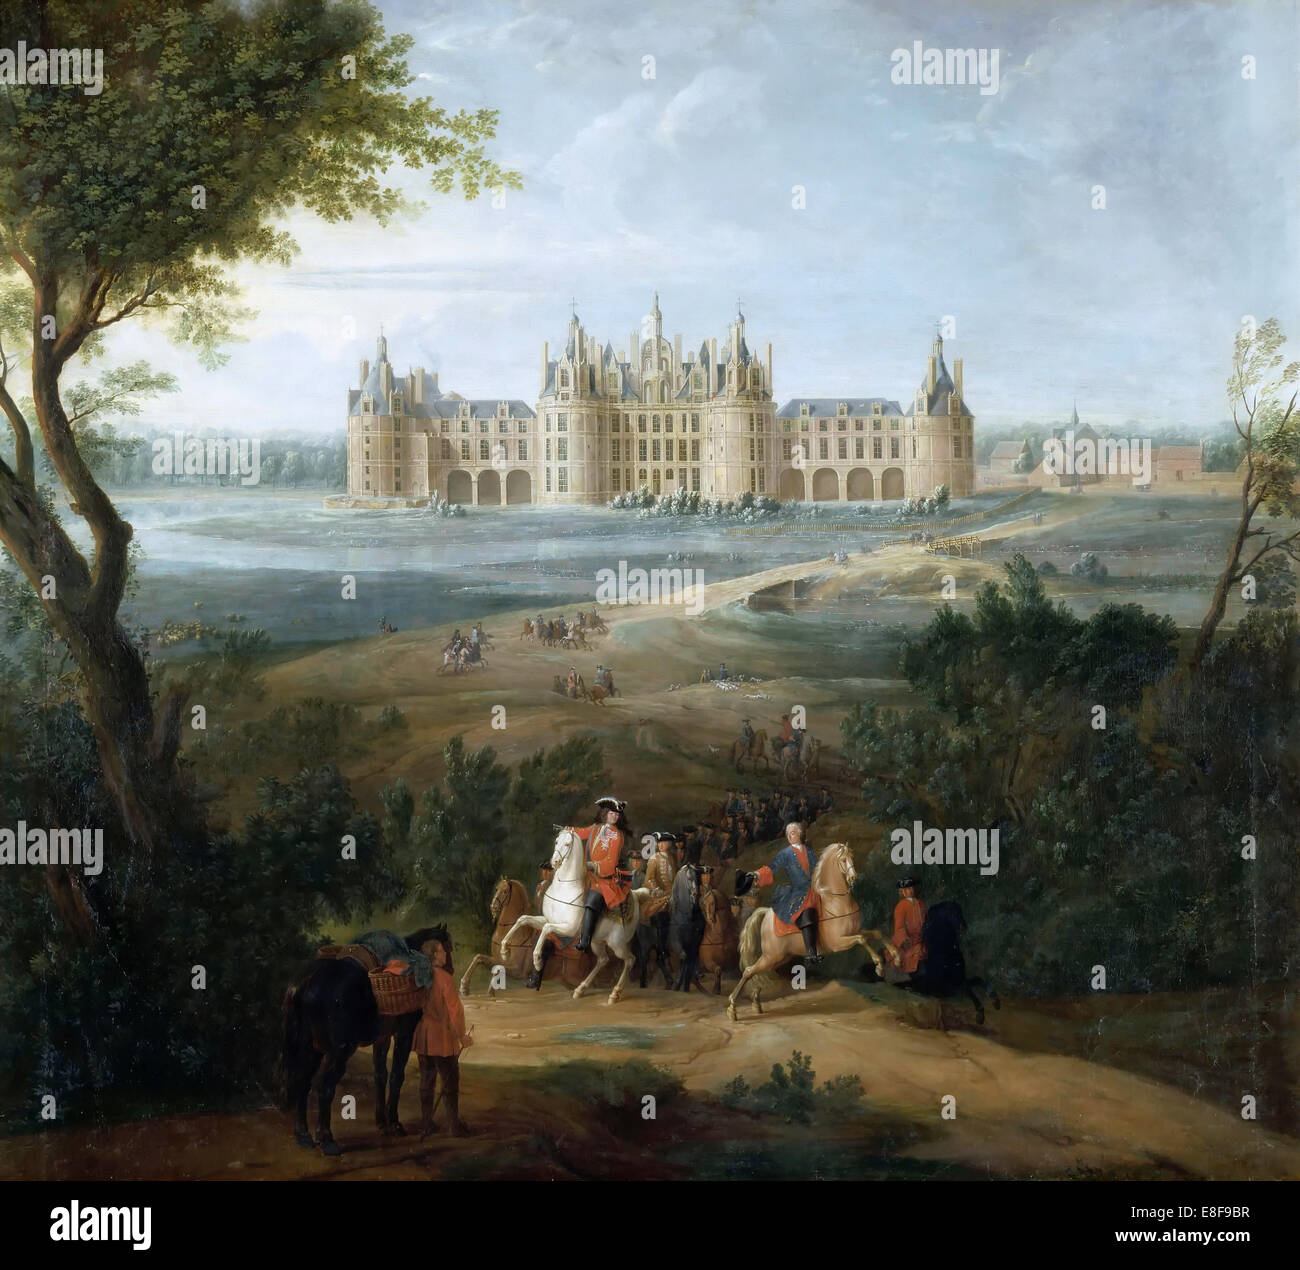 View of the château de Chambord, from the park. Artist: Martin, Pierre-Denis II (1663-1742) - Stock Image